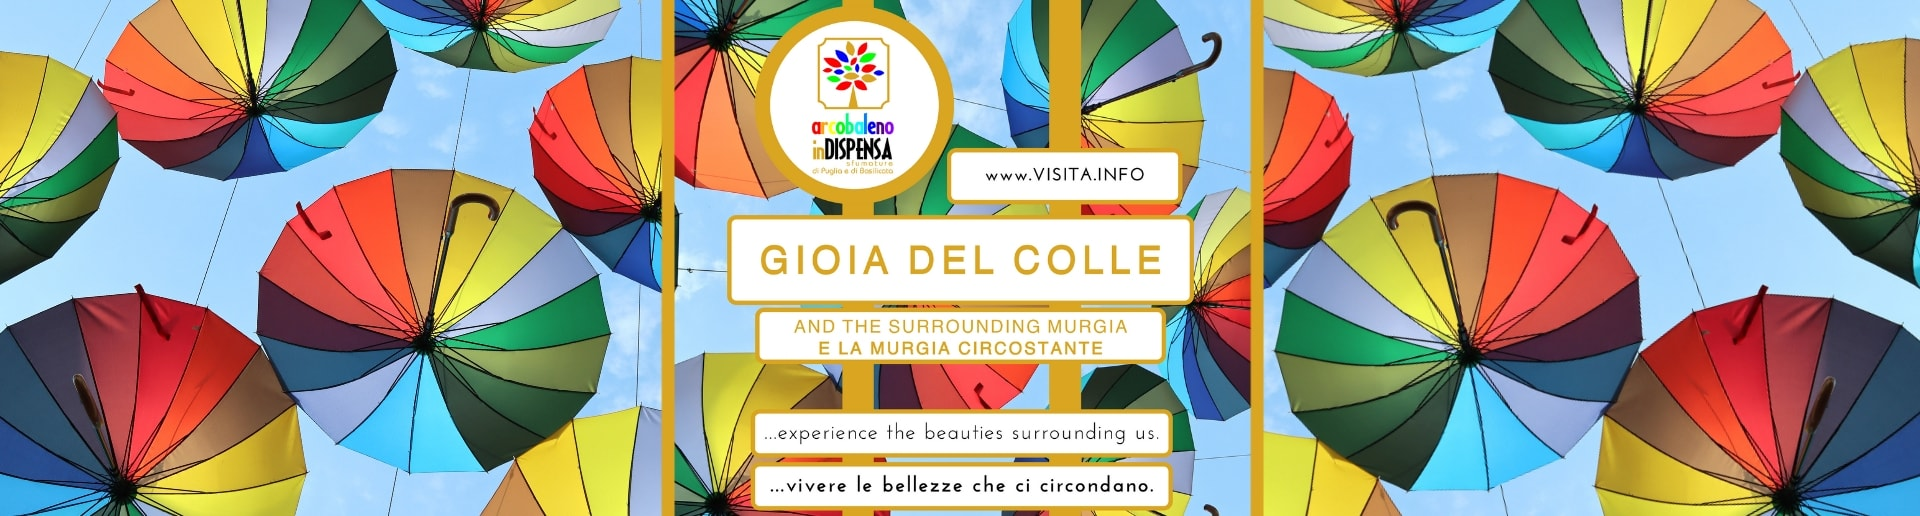 GIOIA DEL COLLE AND THE SURROUNDING MURGIA-min